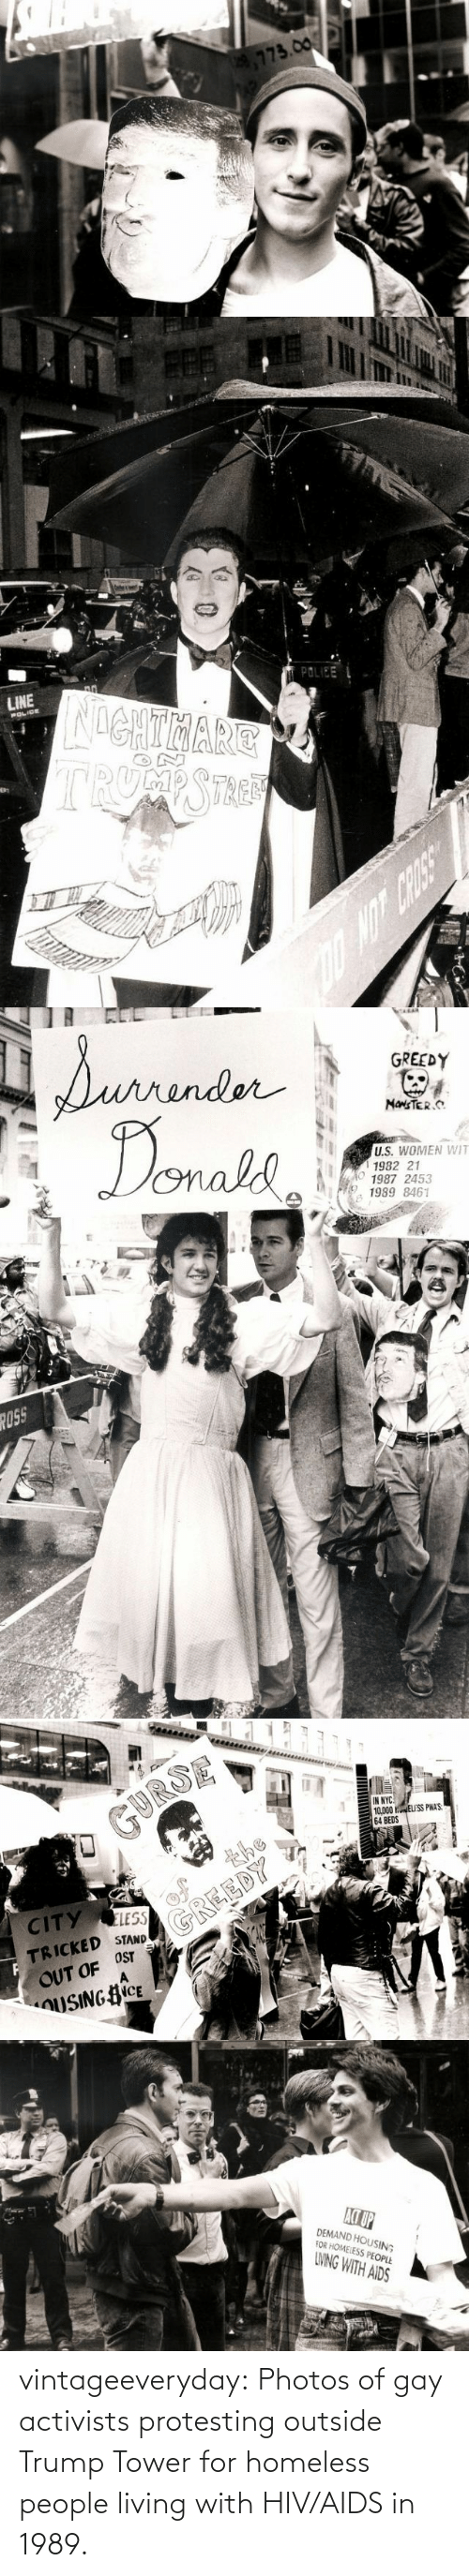 people: vintageeveryday:  Photos of gay activists protesting outside Trump Tower for homeless people living with HIV/AIDS in 1989.